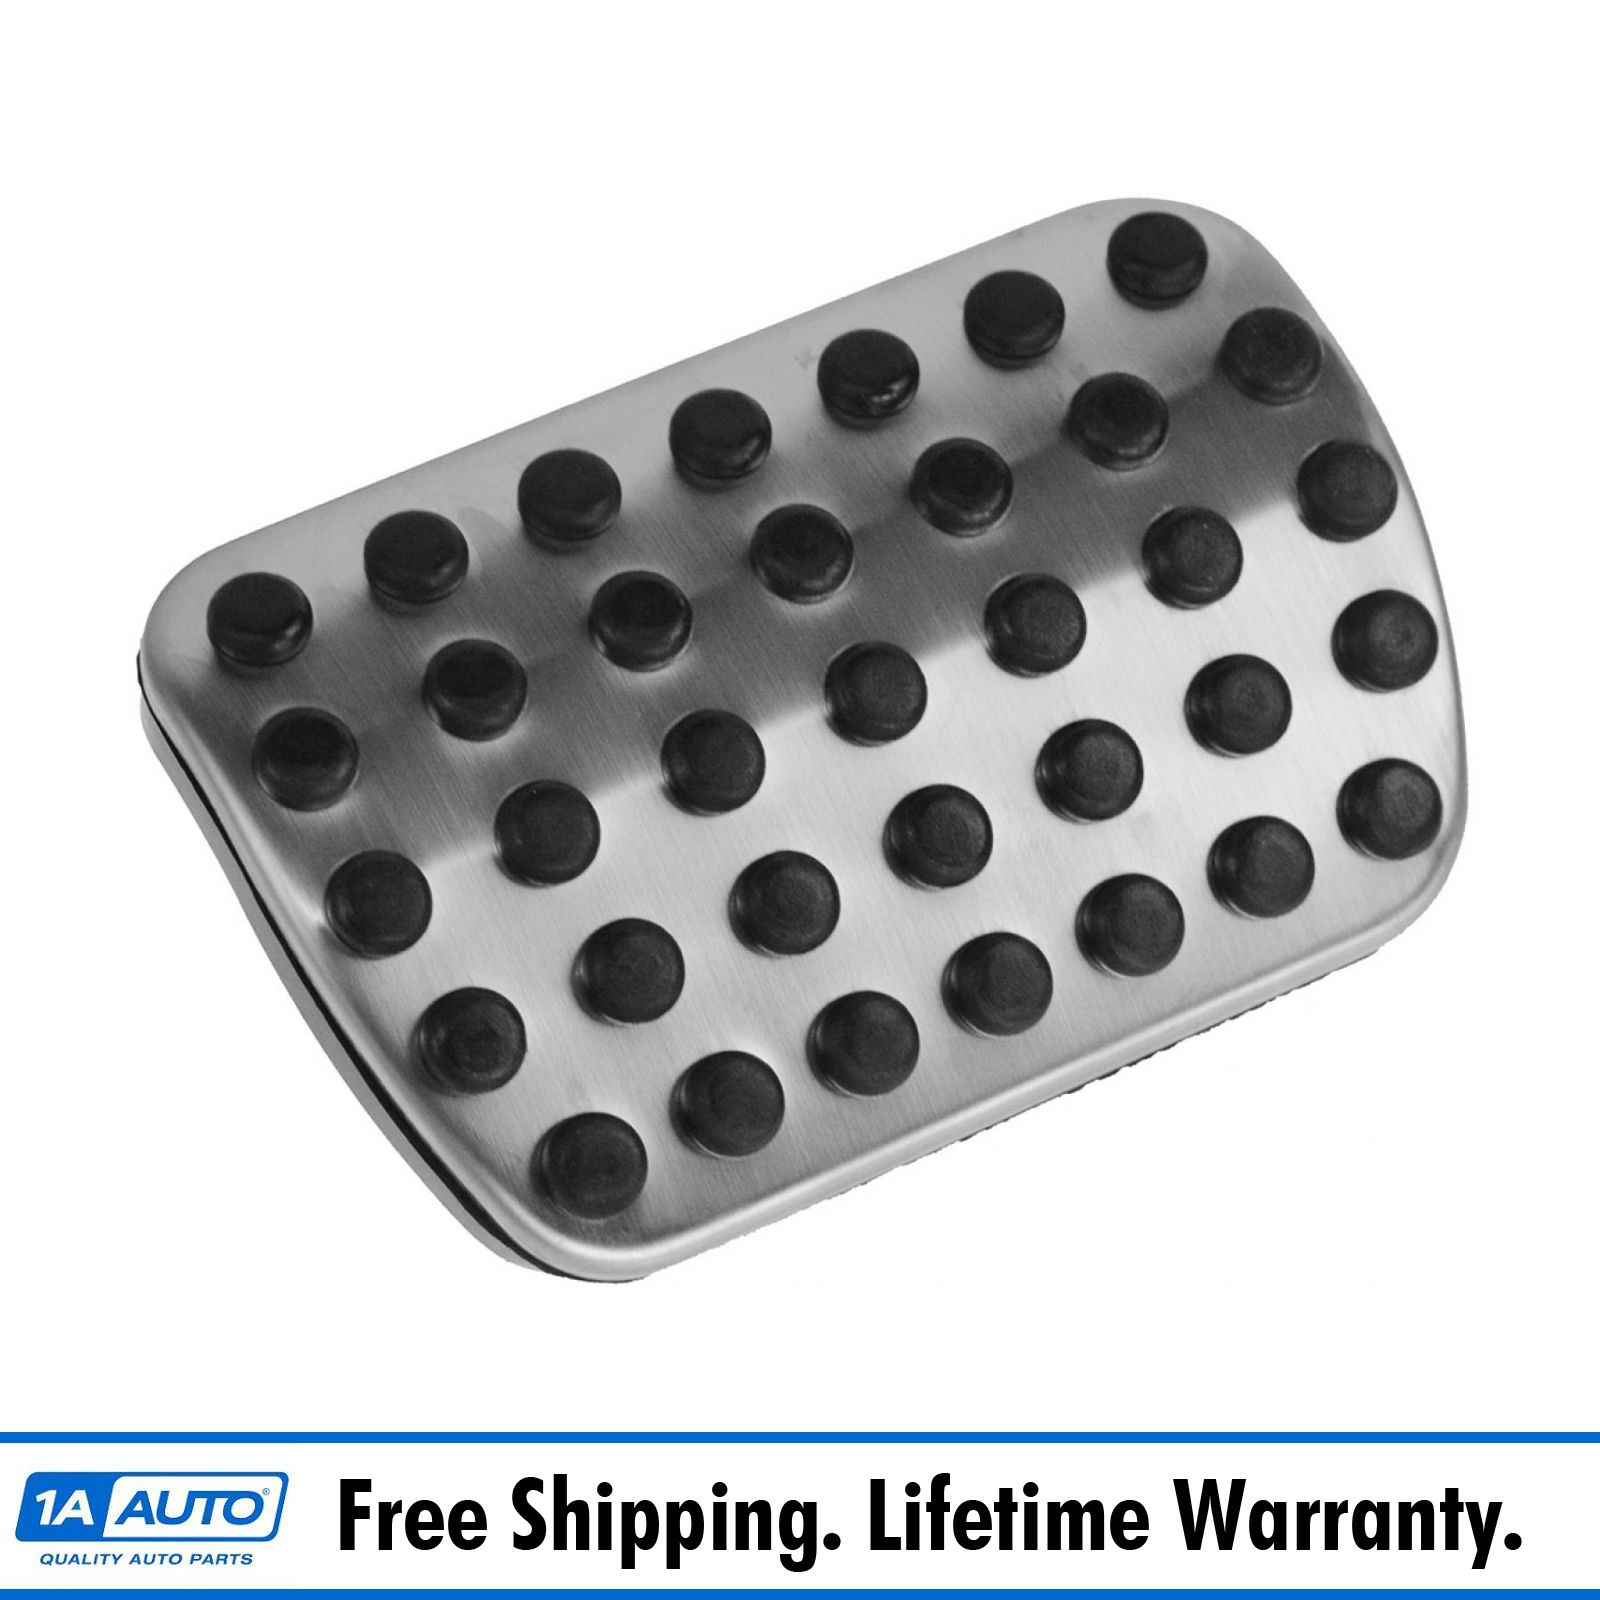 Stainless Steel Gas Brake Pedals Pads for Mercedes Benz M GL R Class AMG GL350 GL450 GL550 GL63 AMG ML350 ML550 ML63 AMG R350 ML450 GL320 ML320 R320 ML500 R500